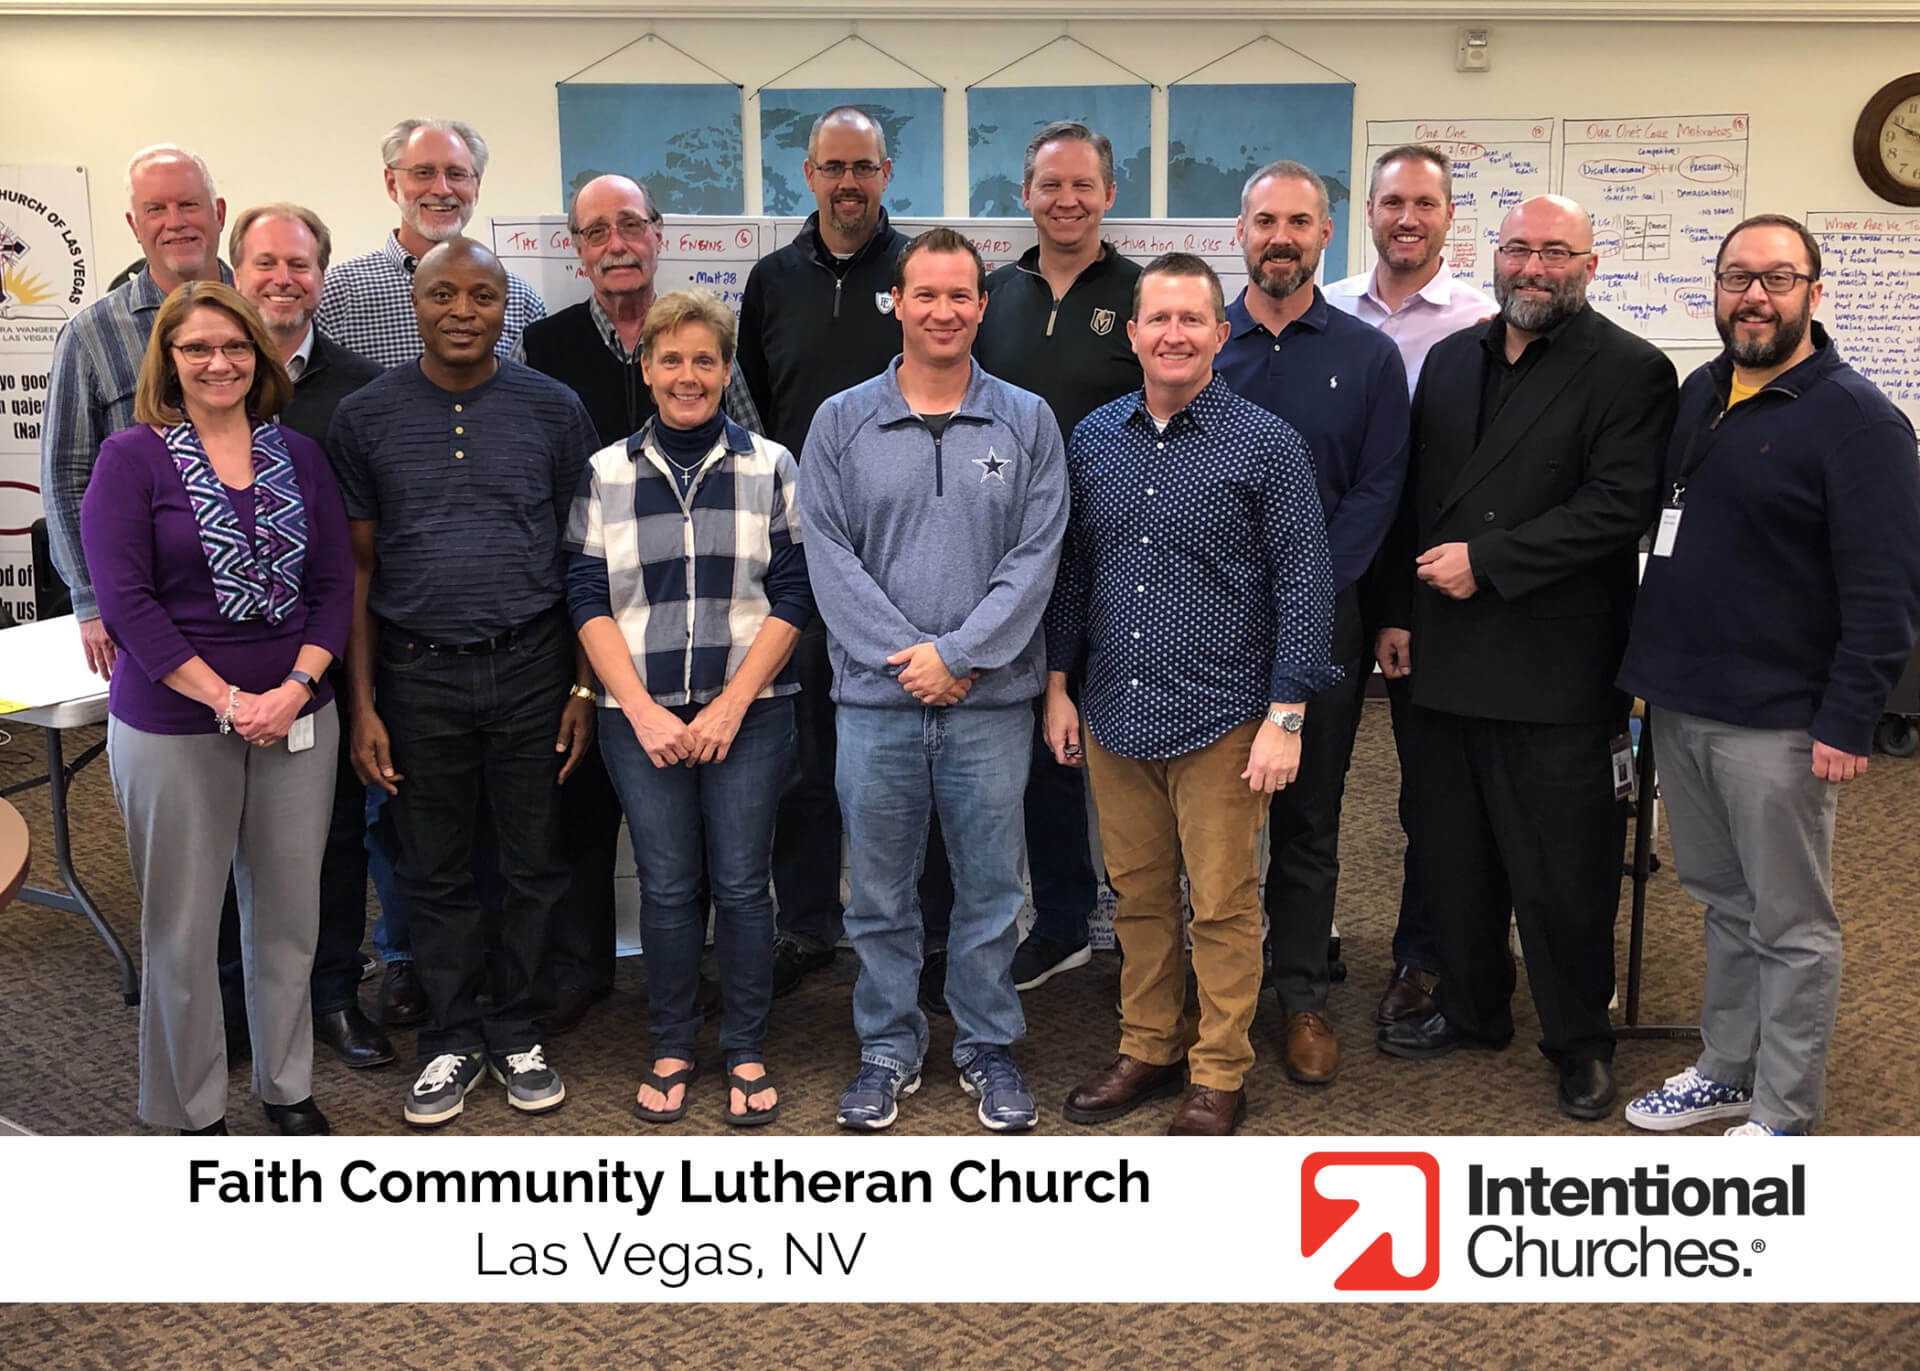 3 Insights & 10 Words from Faith Community Lutheran – Las Vegas, NV